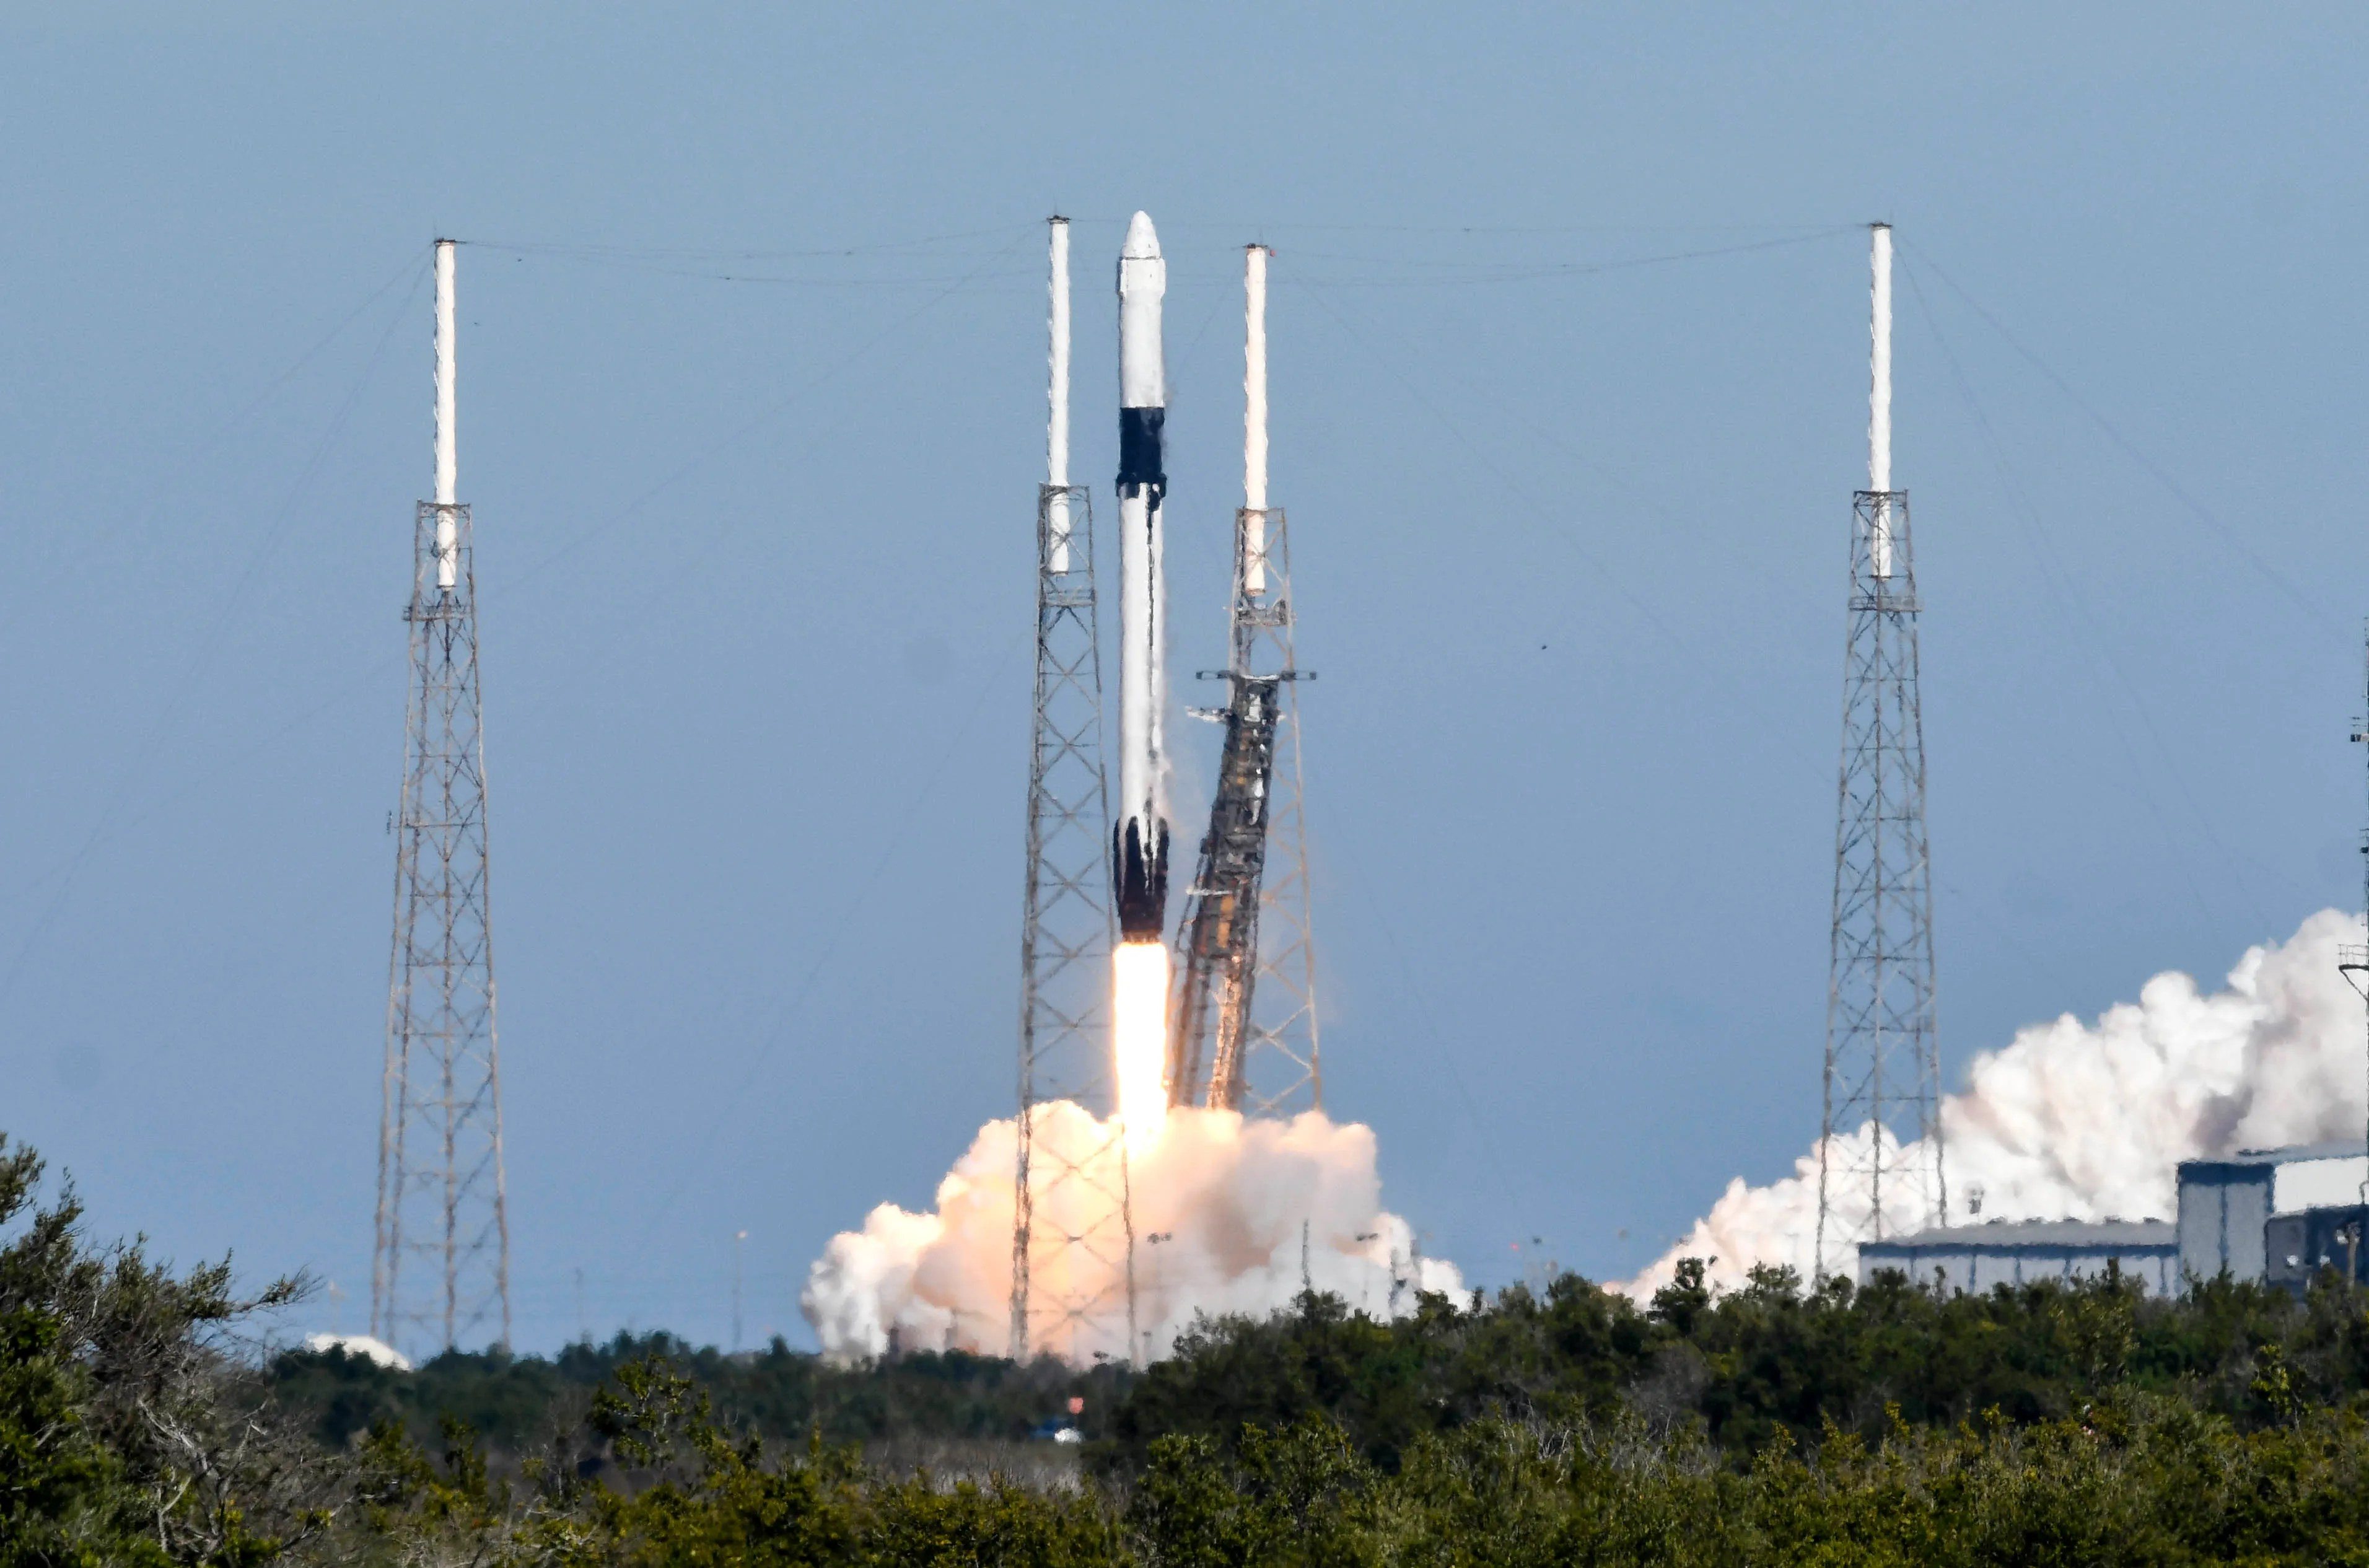 SpaceX Falcon 9 launches Dragon to orbit but booster lands in ocean